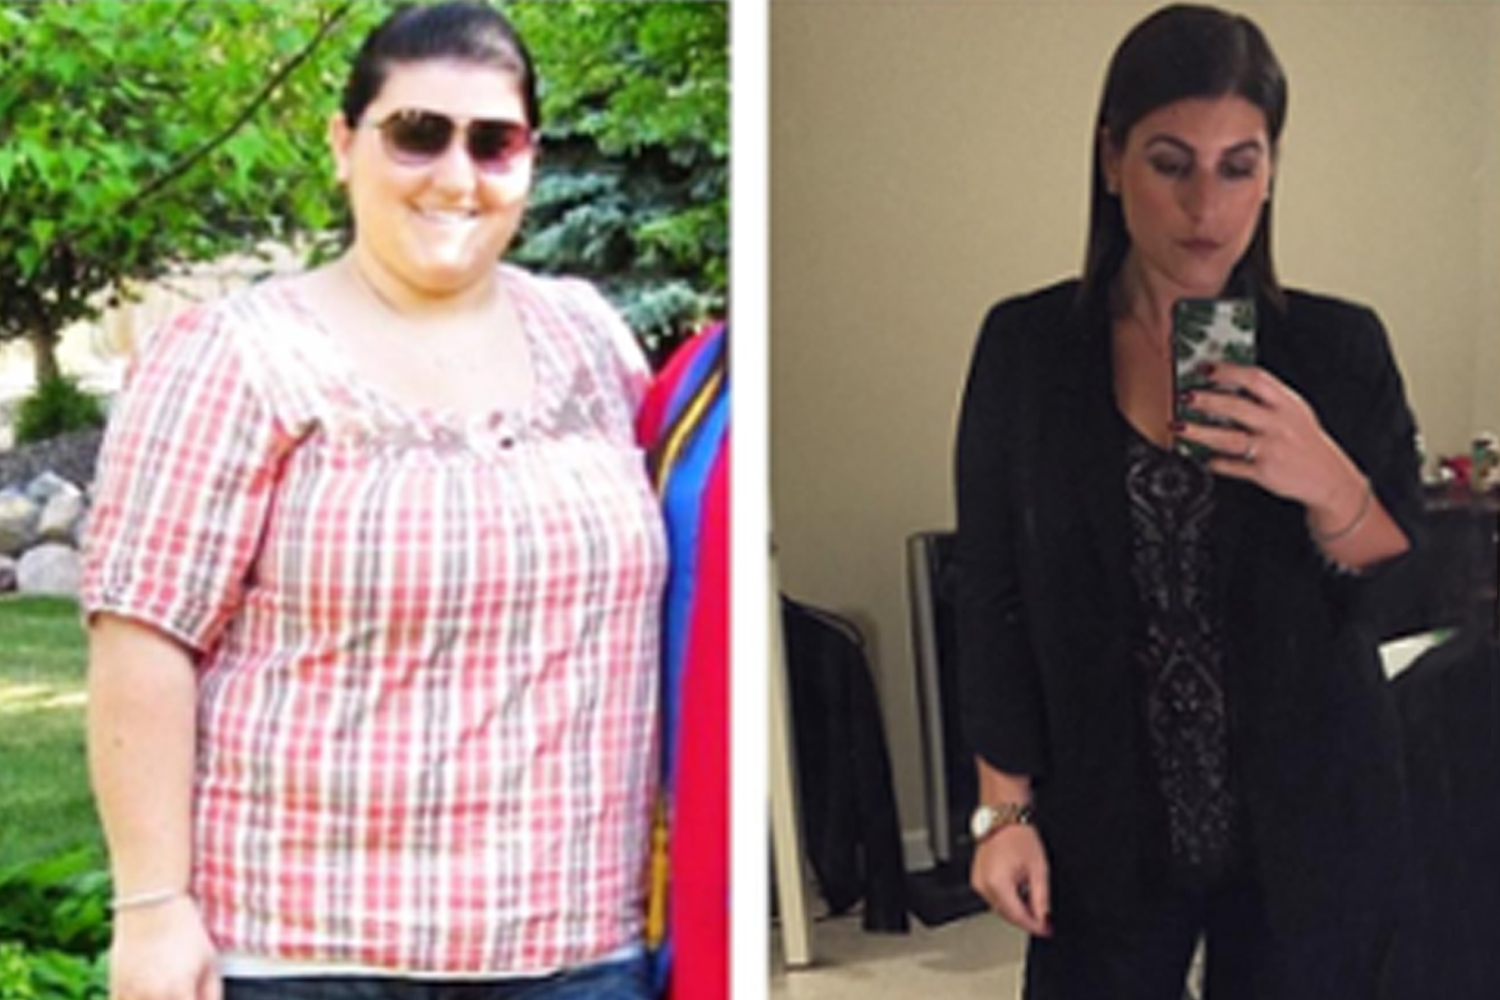 Member Stories: how FFC helped me find my confidence and lose over 100 pounds